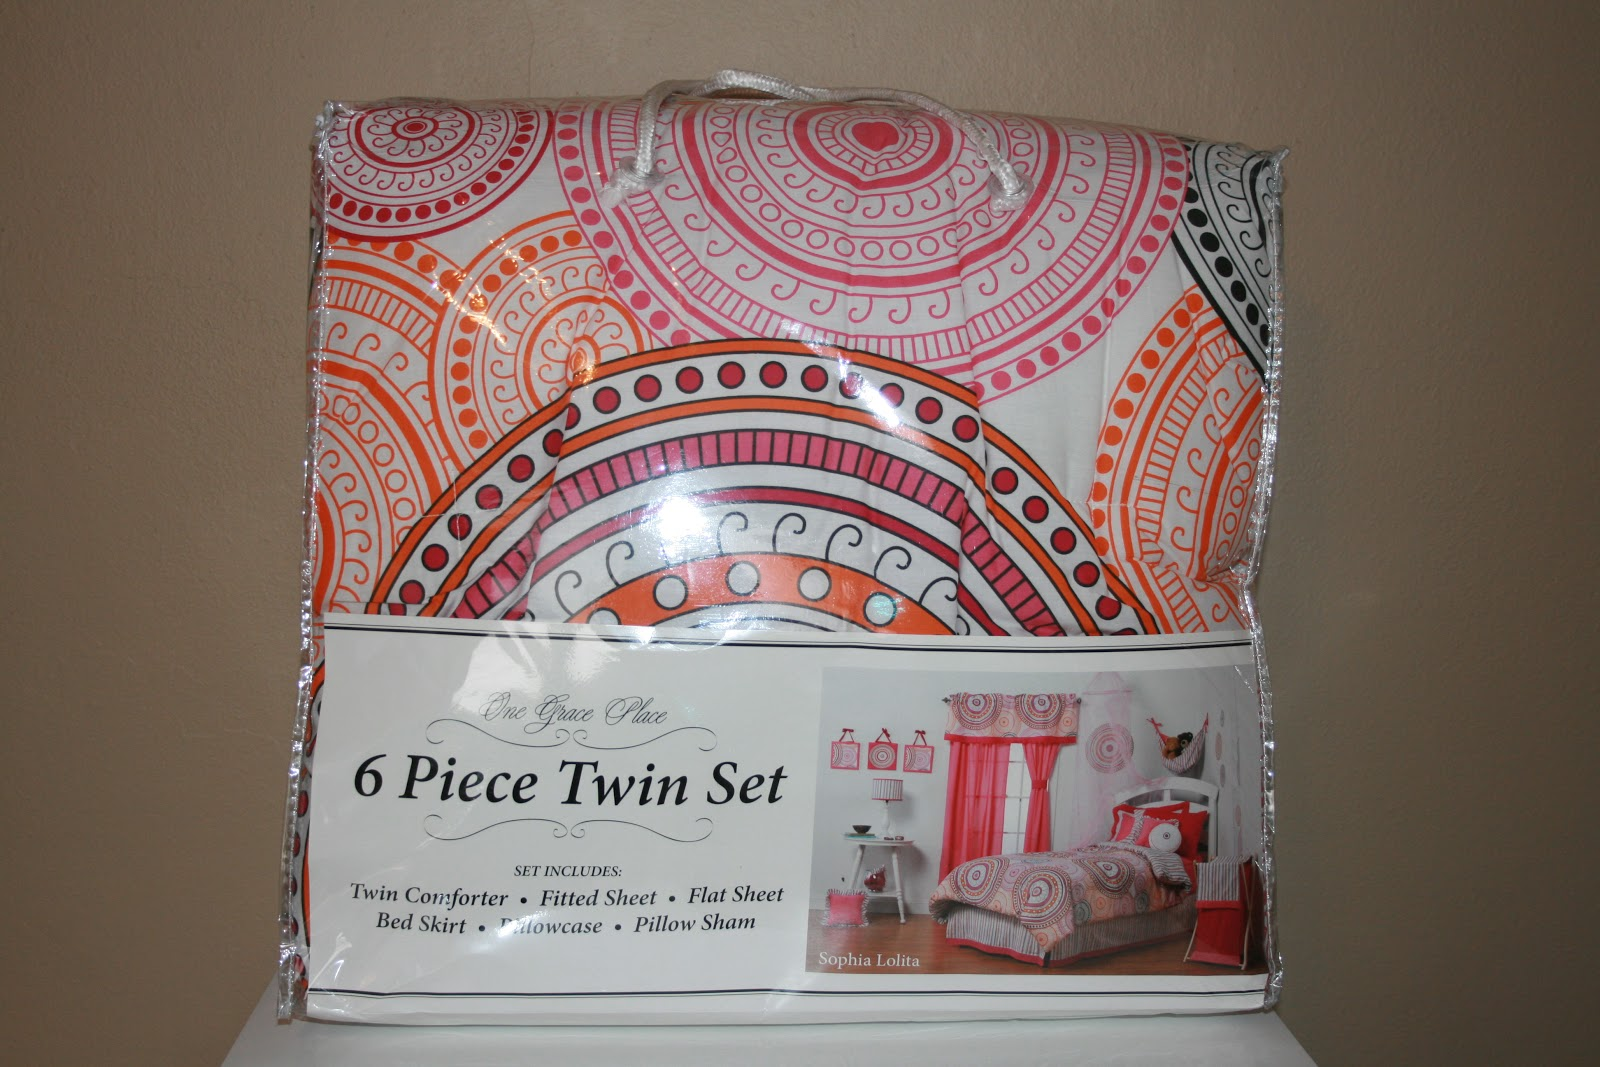 Trying To Go Green One Grace Place BED Set Review And Wall Decal - Winners bedding